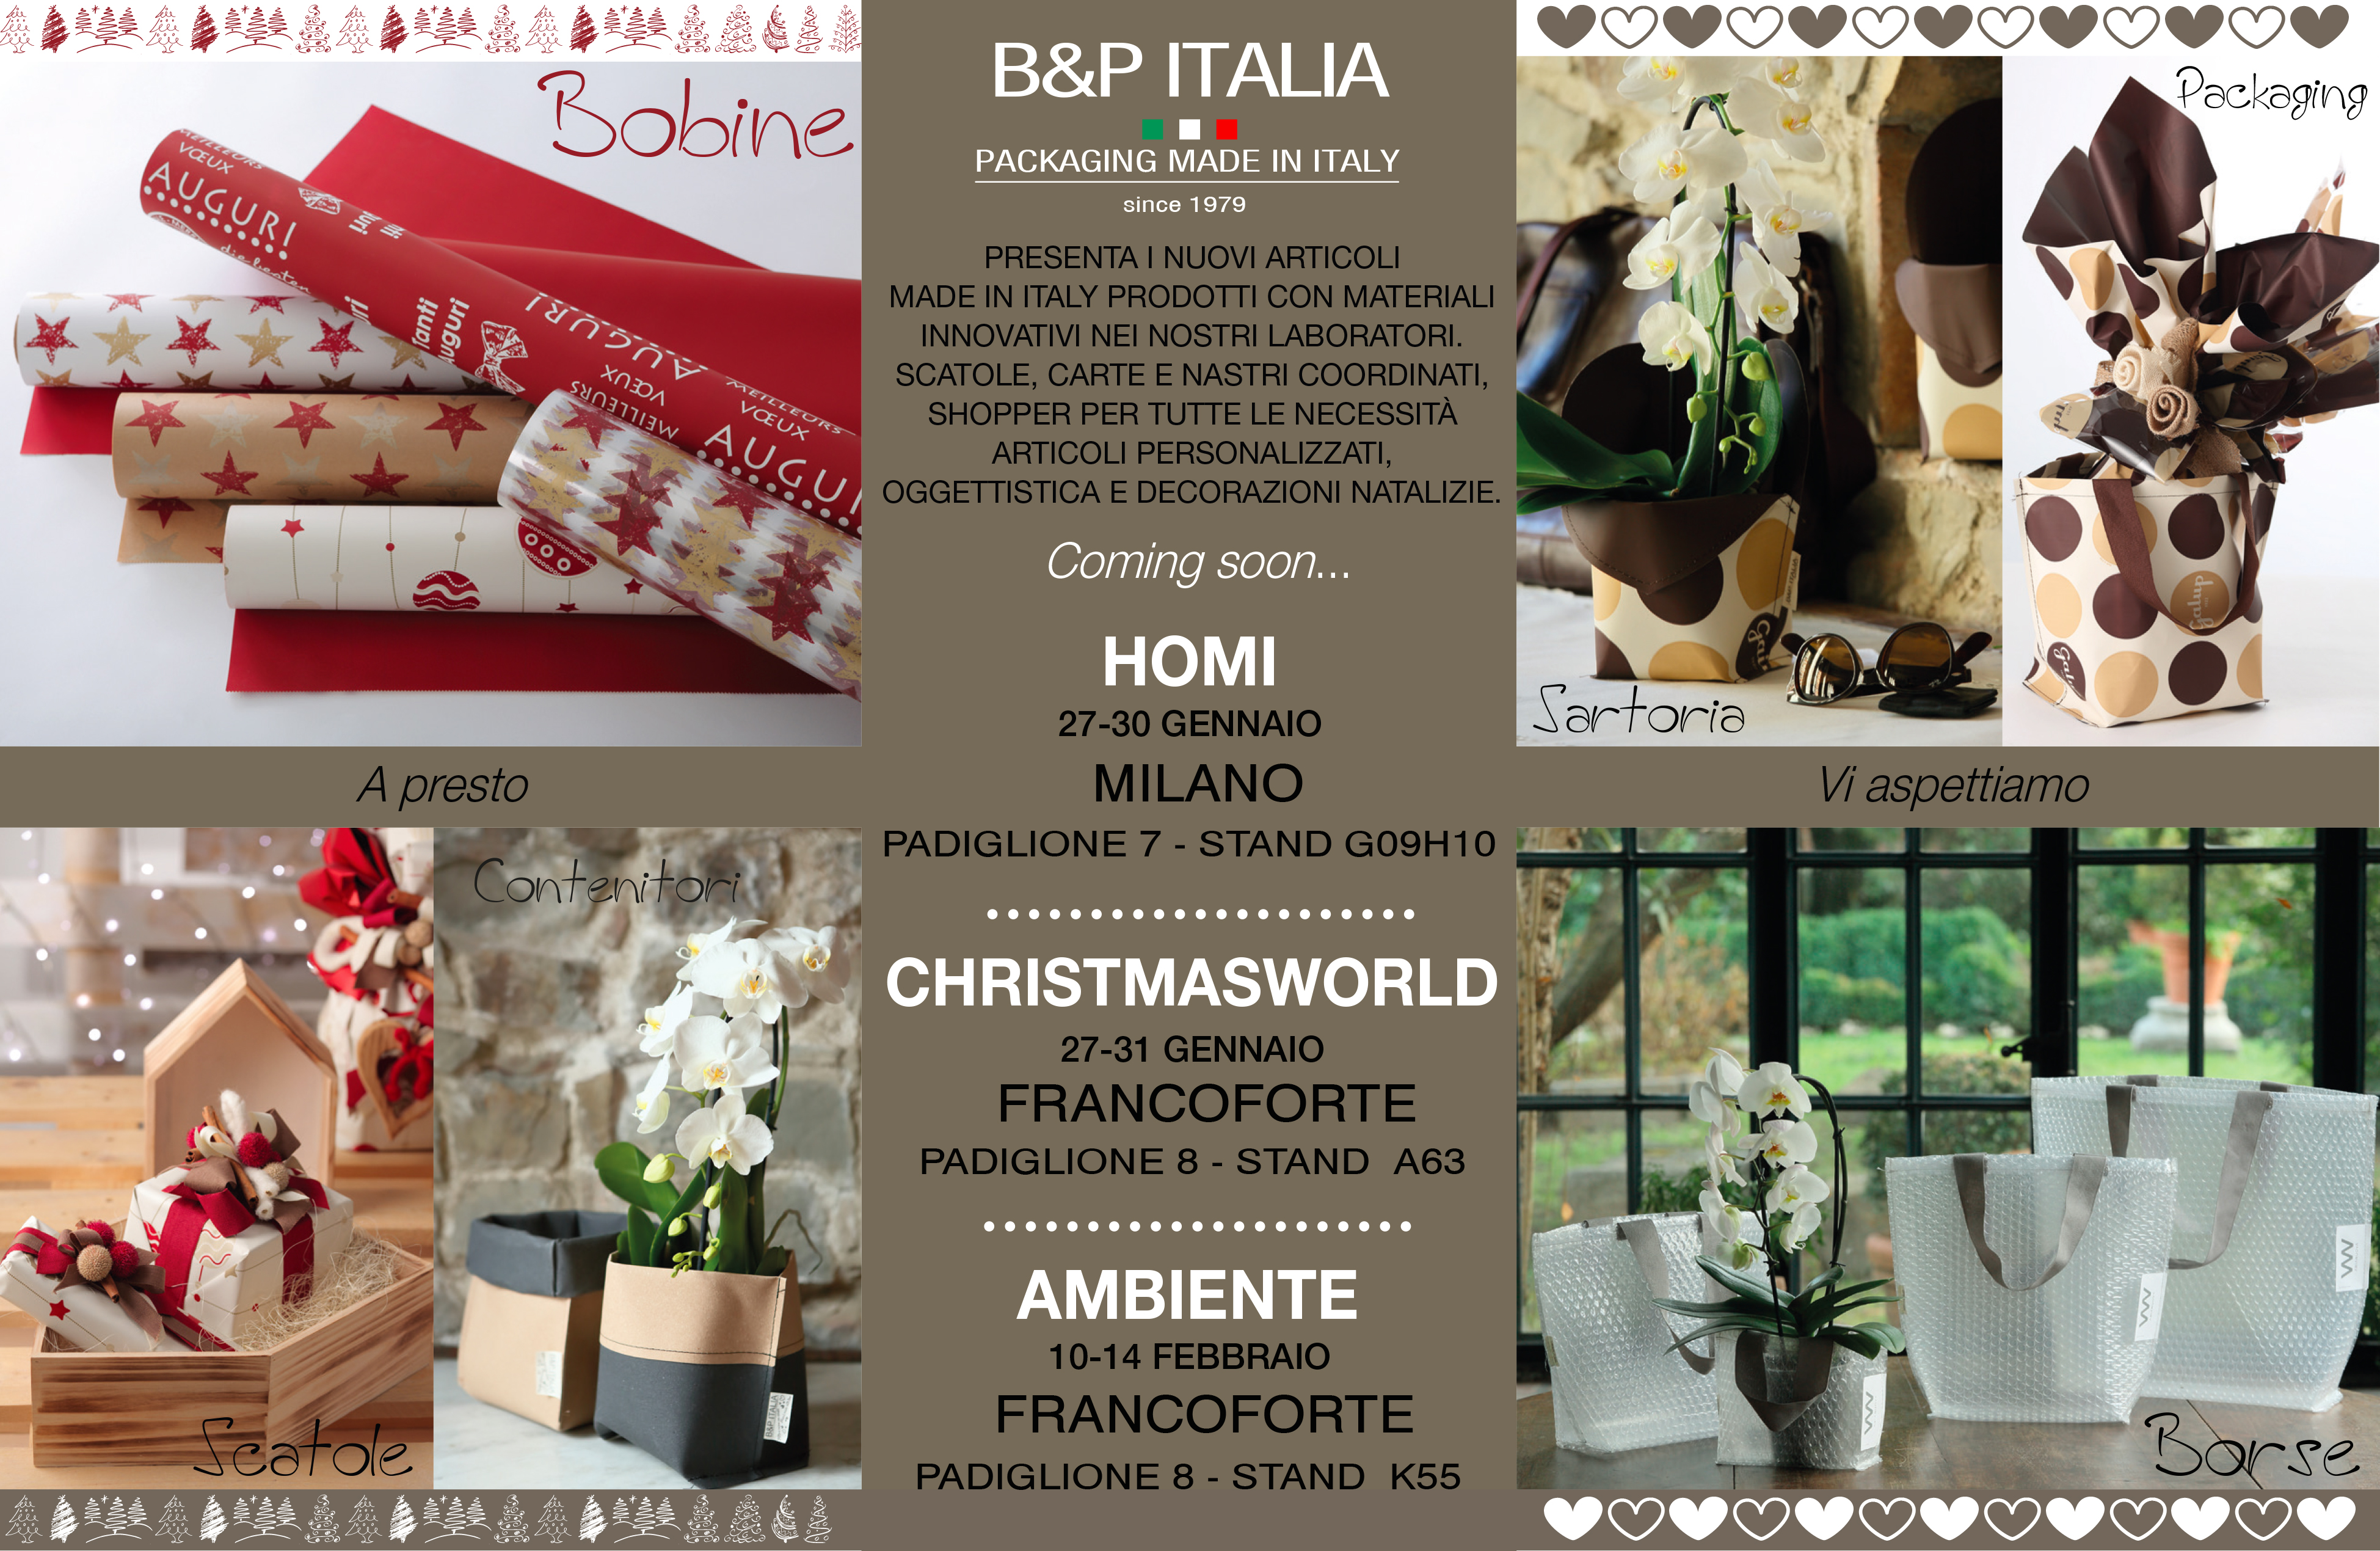 B&P ITALIA - INVITO FIERA